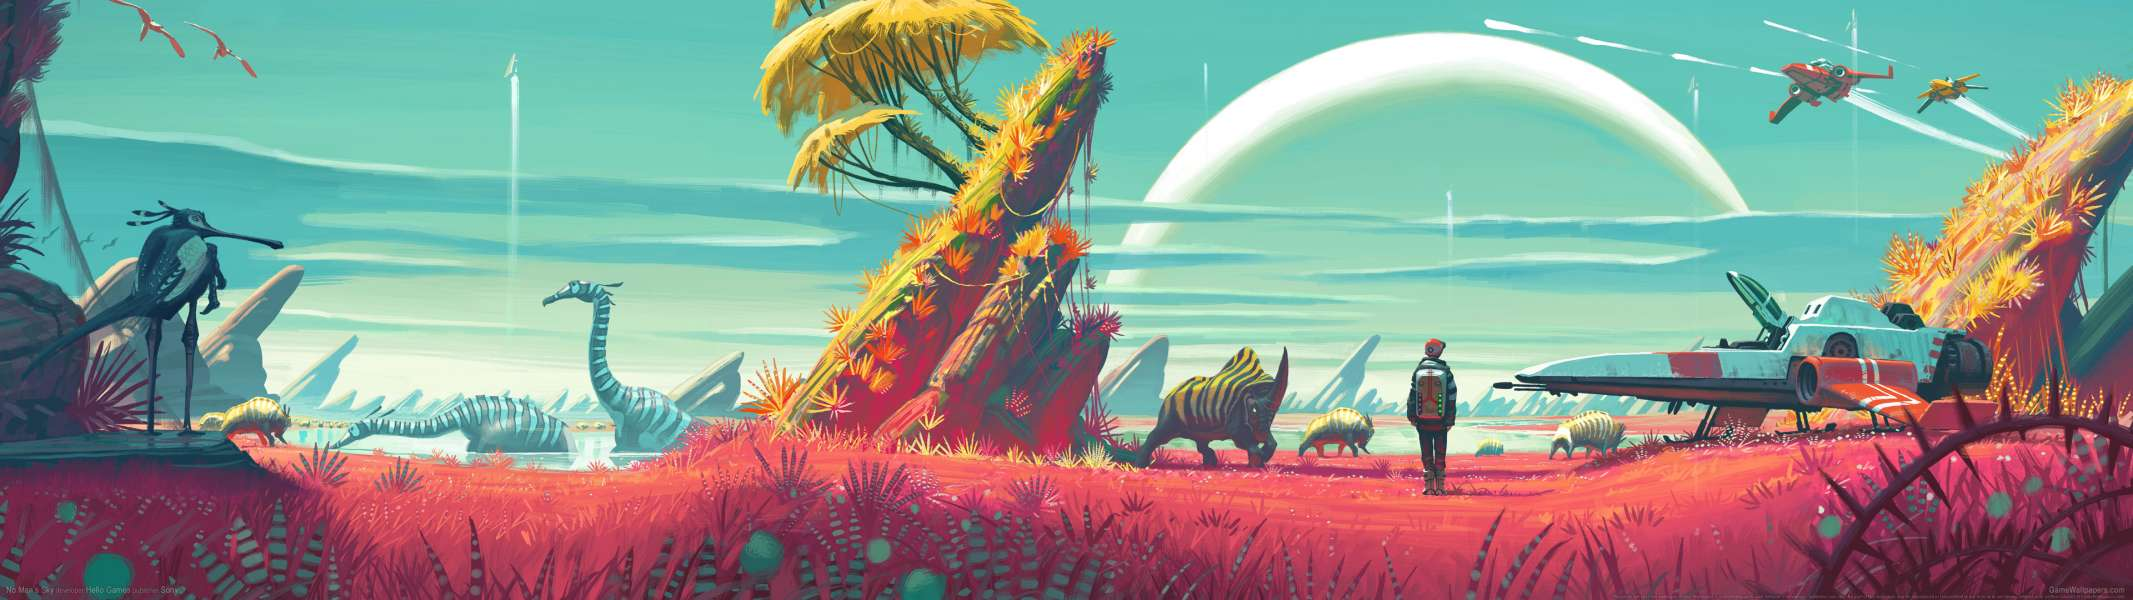 No Man's Sky dual screen fondo de escritorio